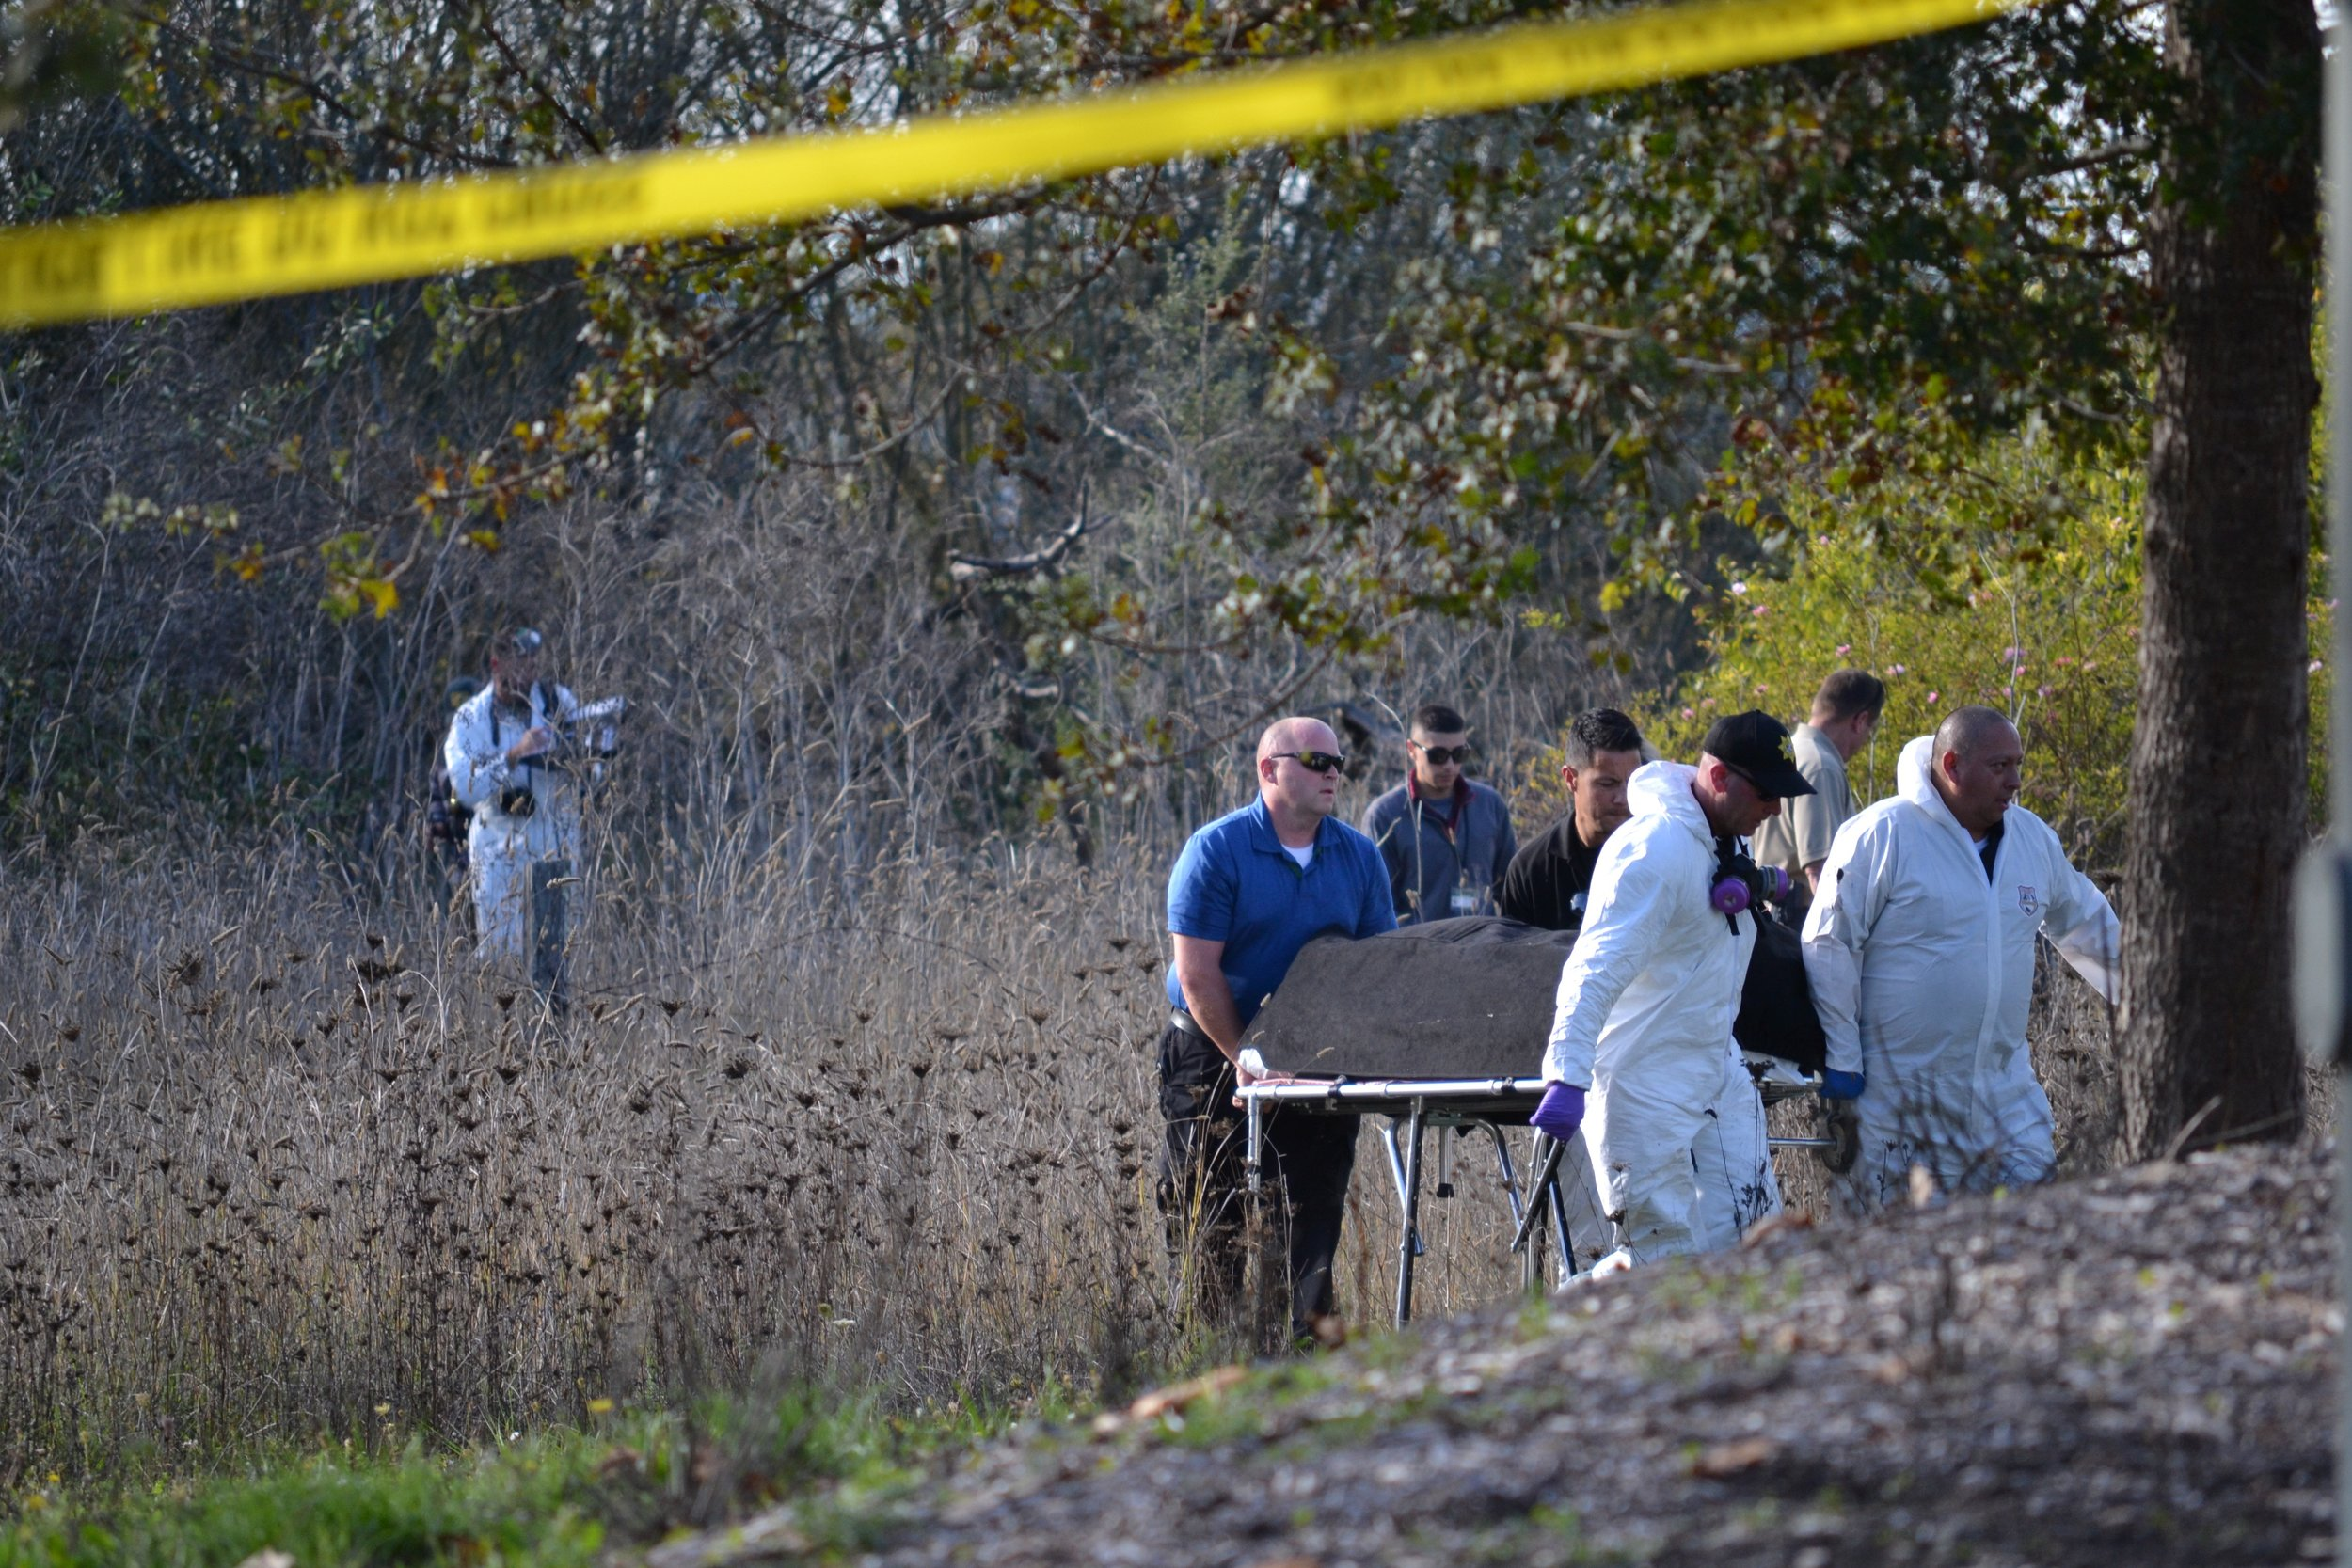 Cause of death released in 18-year-old's body found at